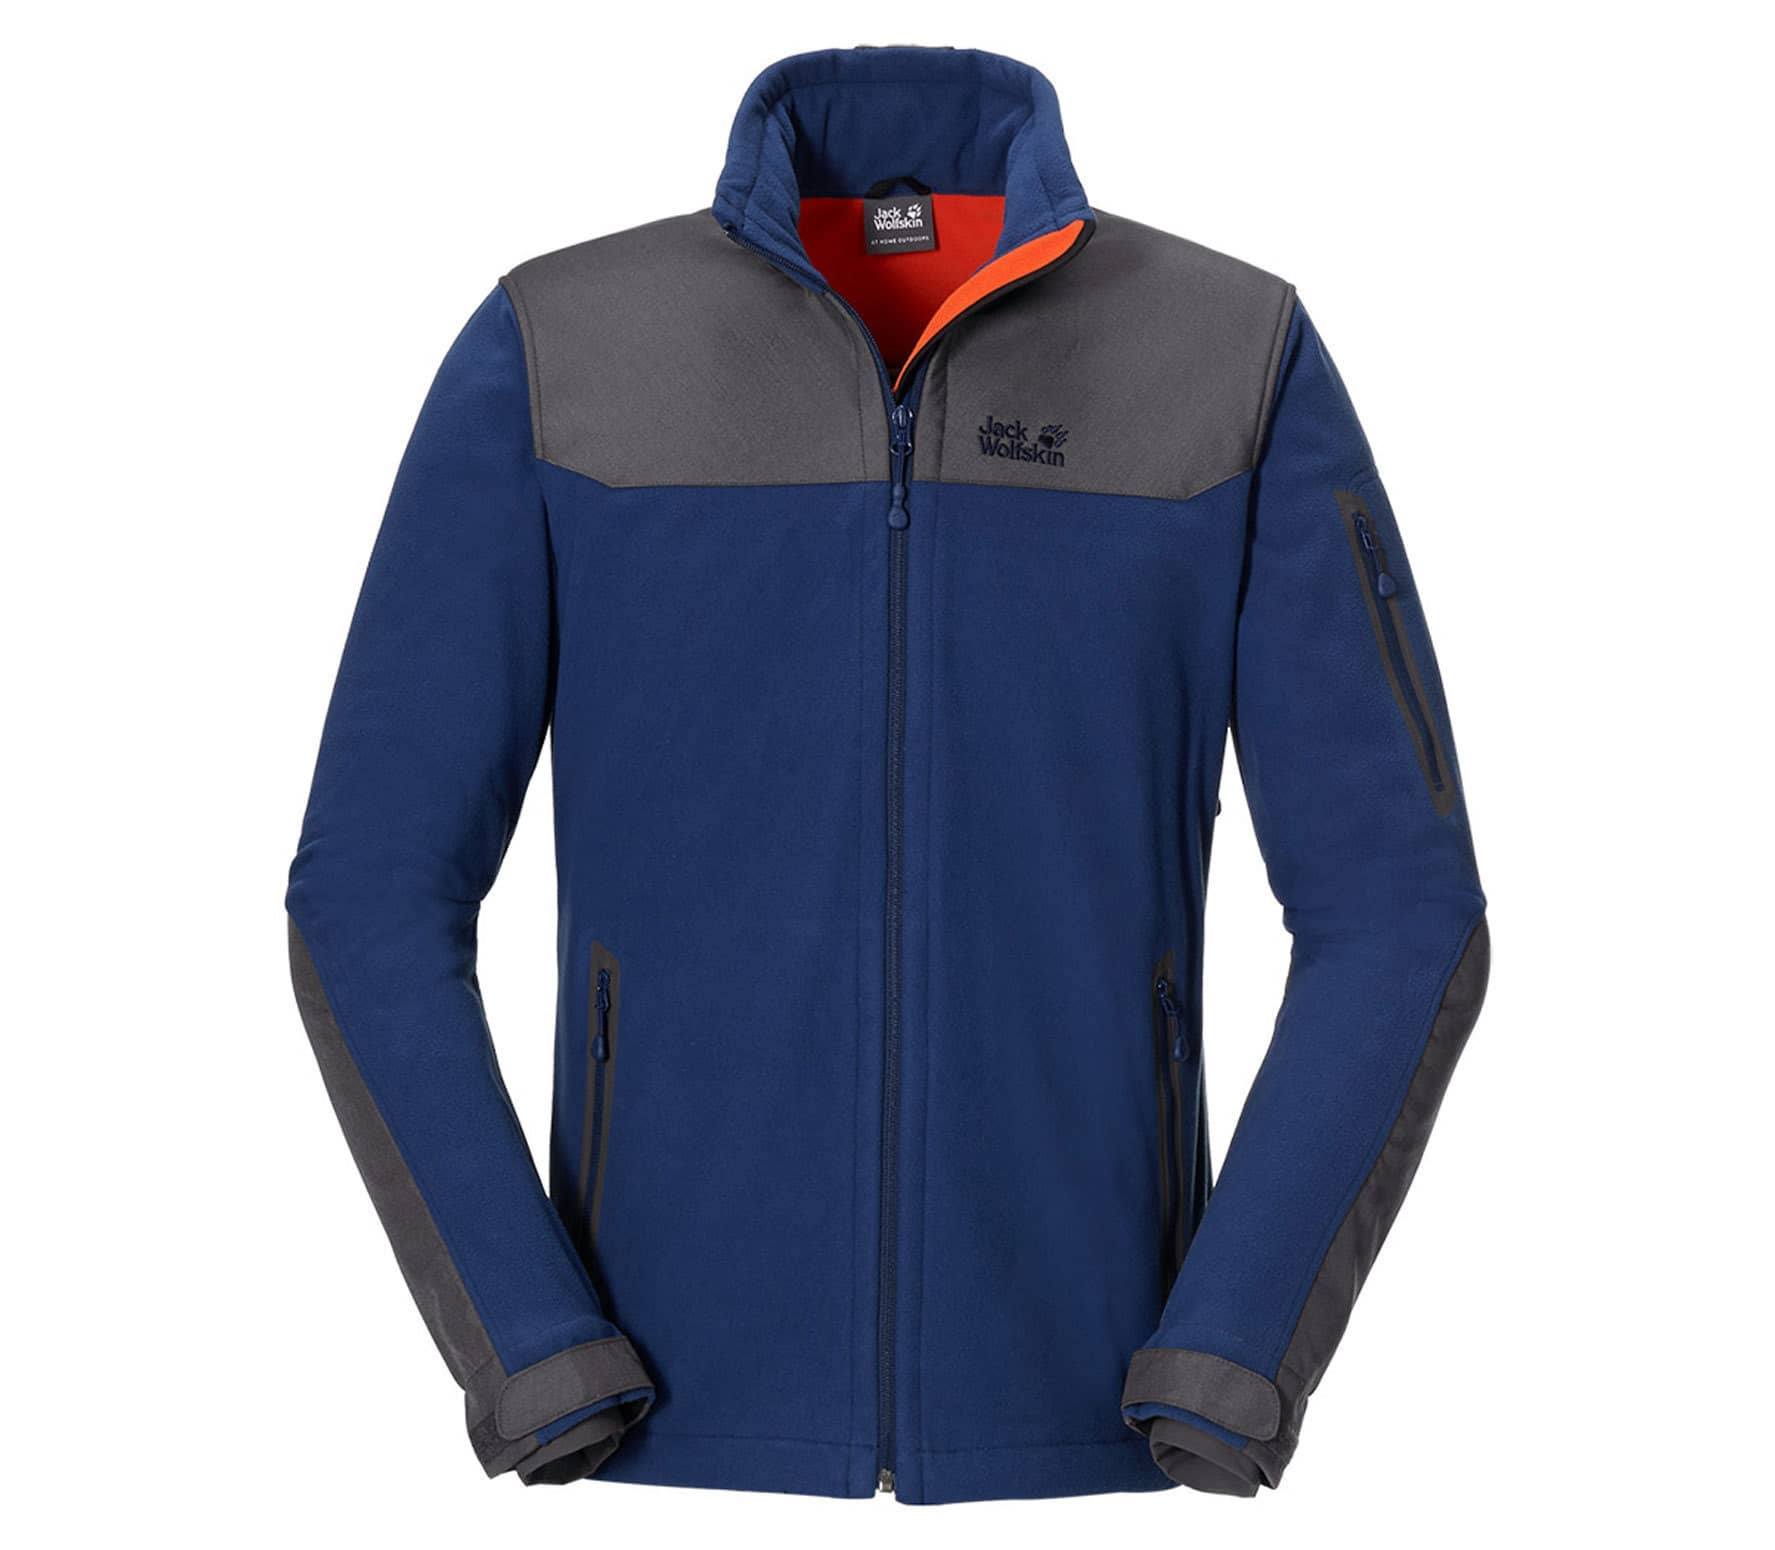 buy online 30186 a26bd Jack wolfskin Blizzard Uomo giacca in pile Men